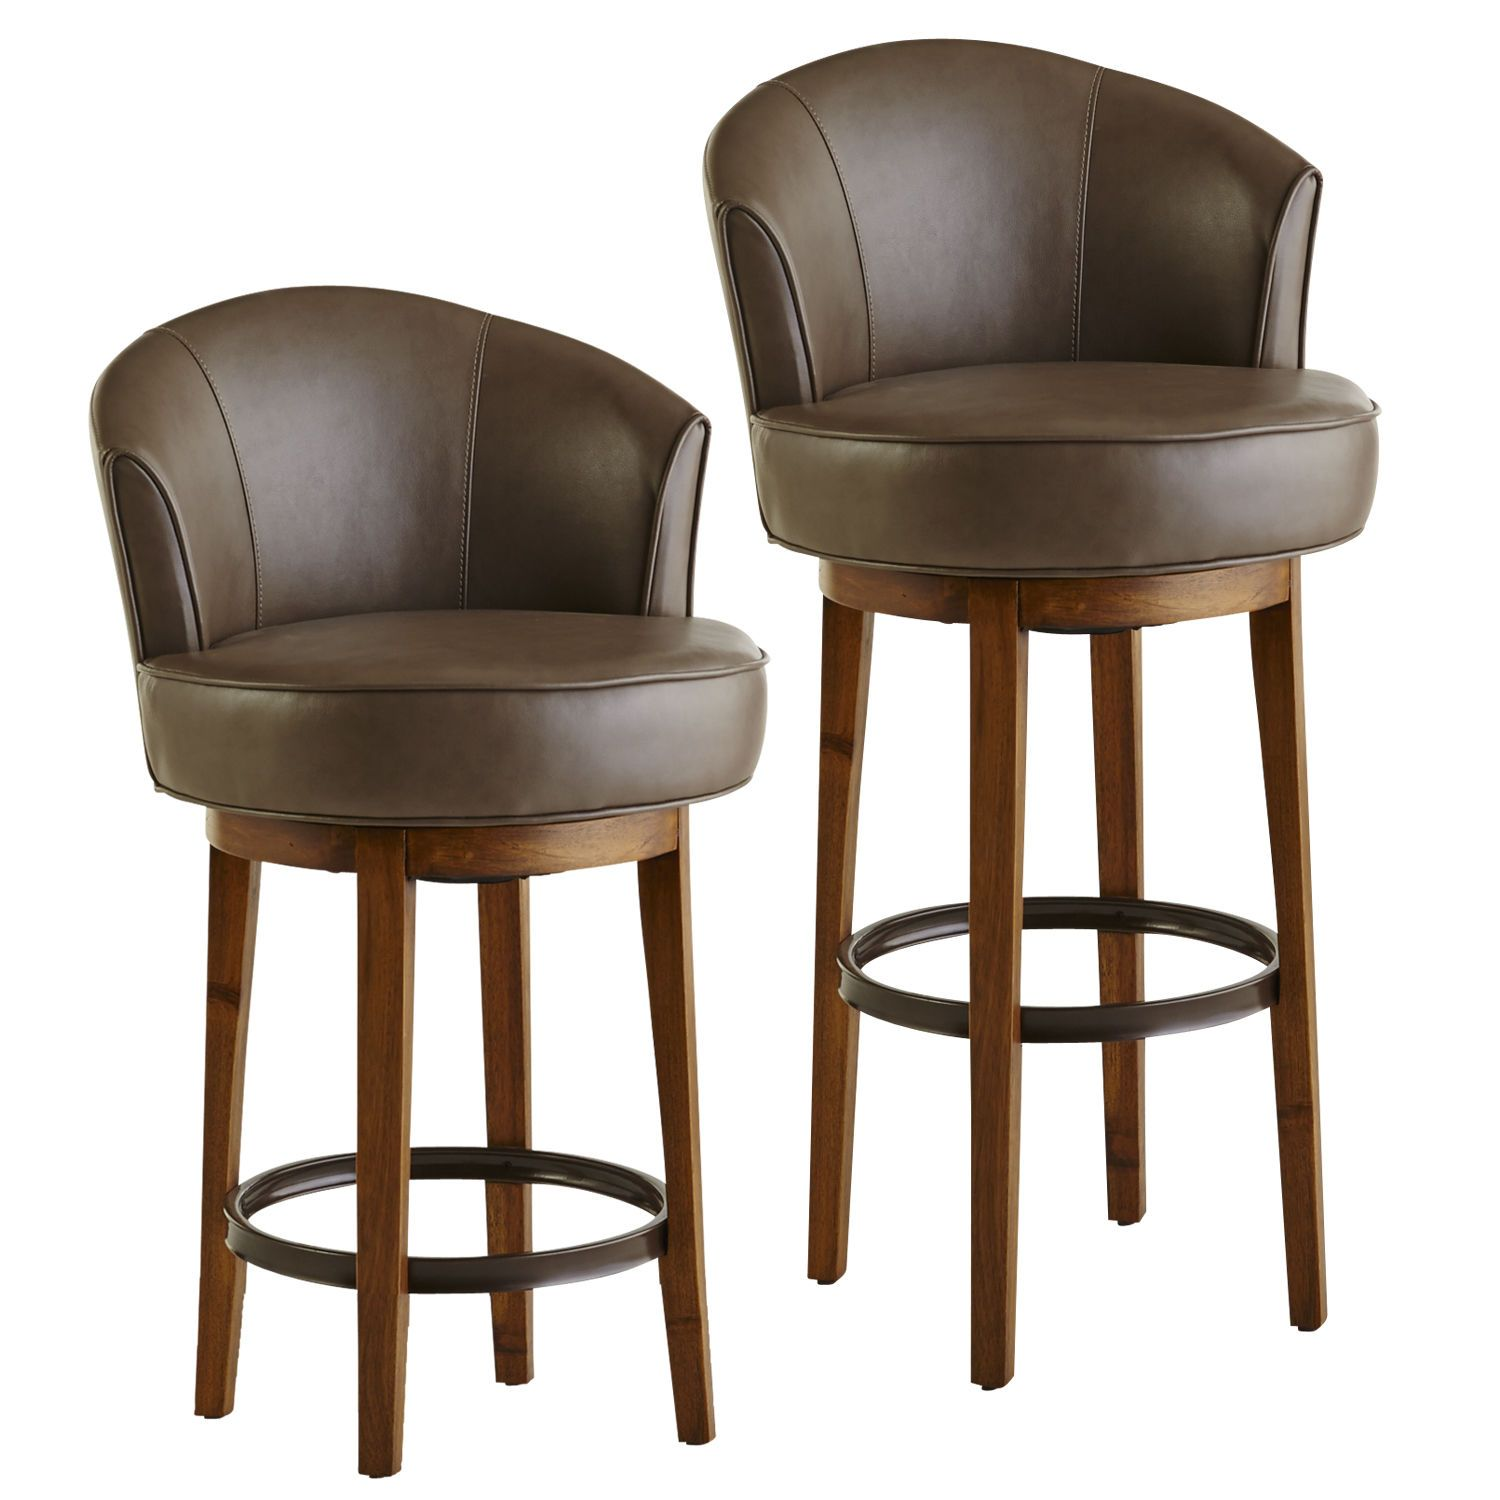 Isaac Swivel Bar & Counter Stools Taupe